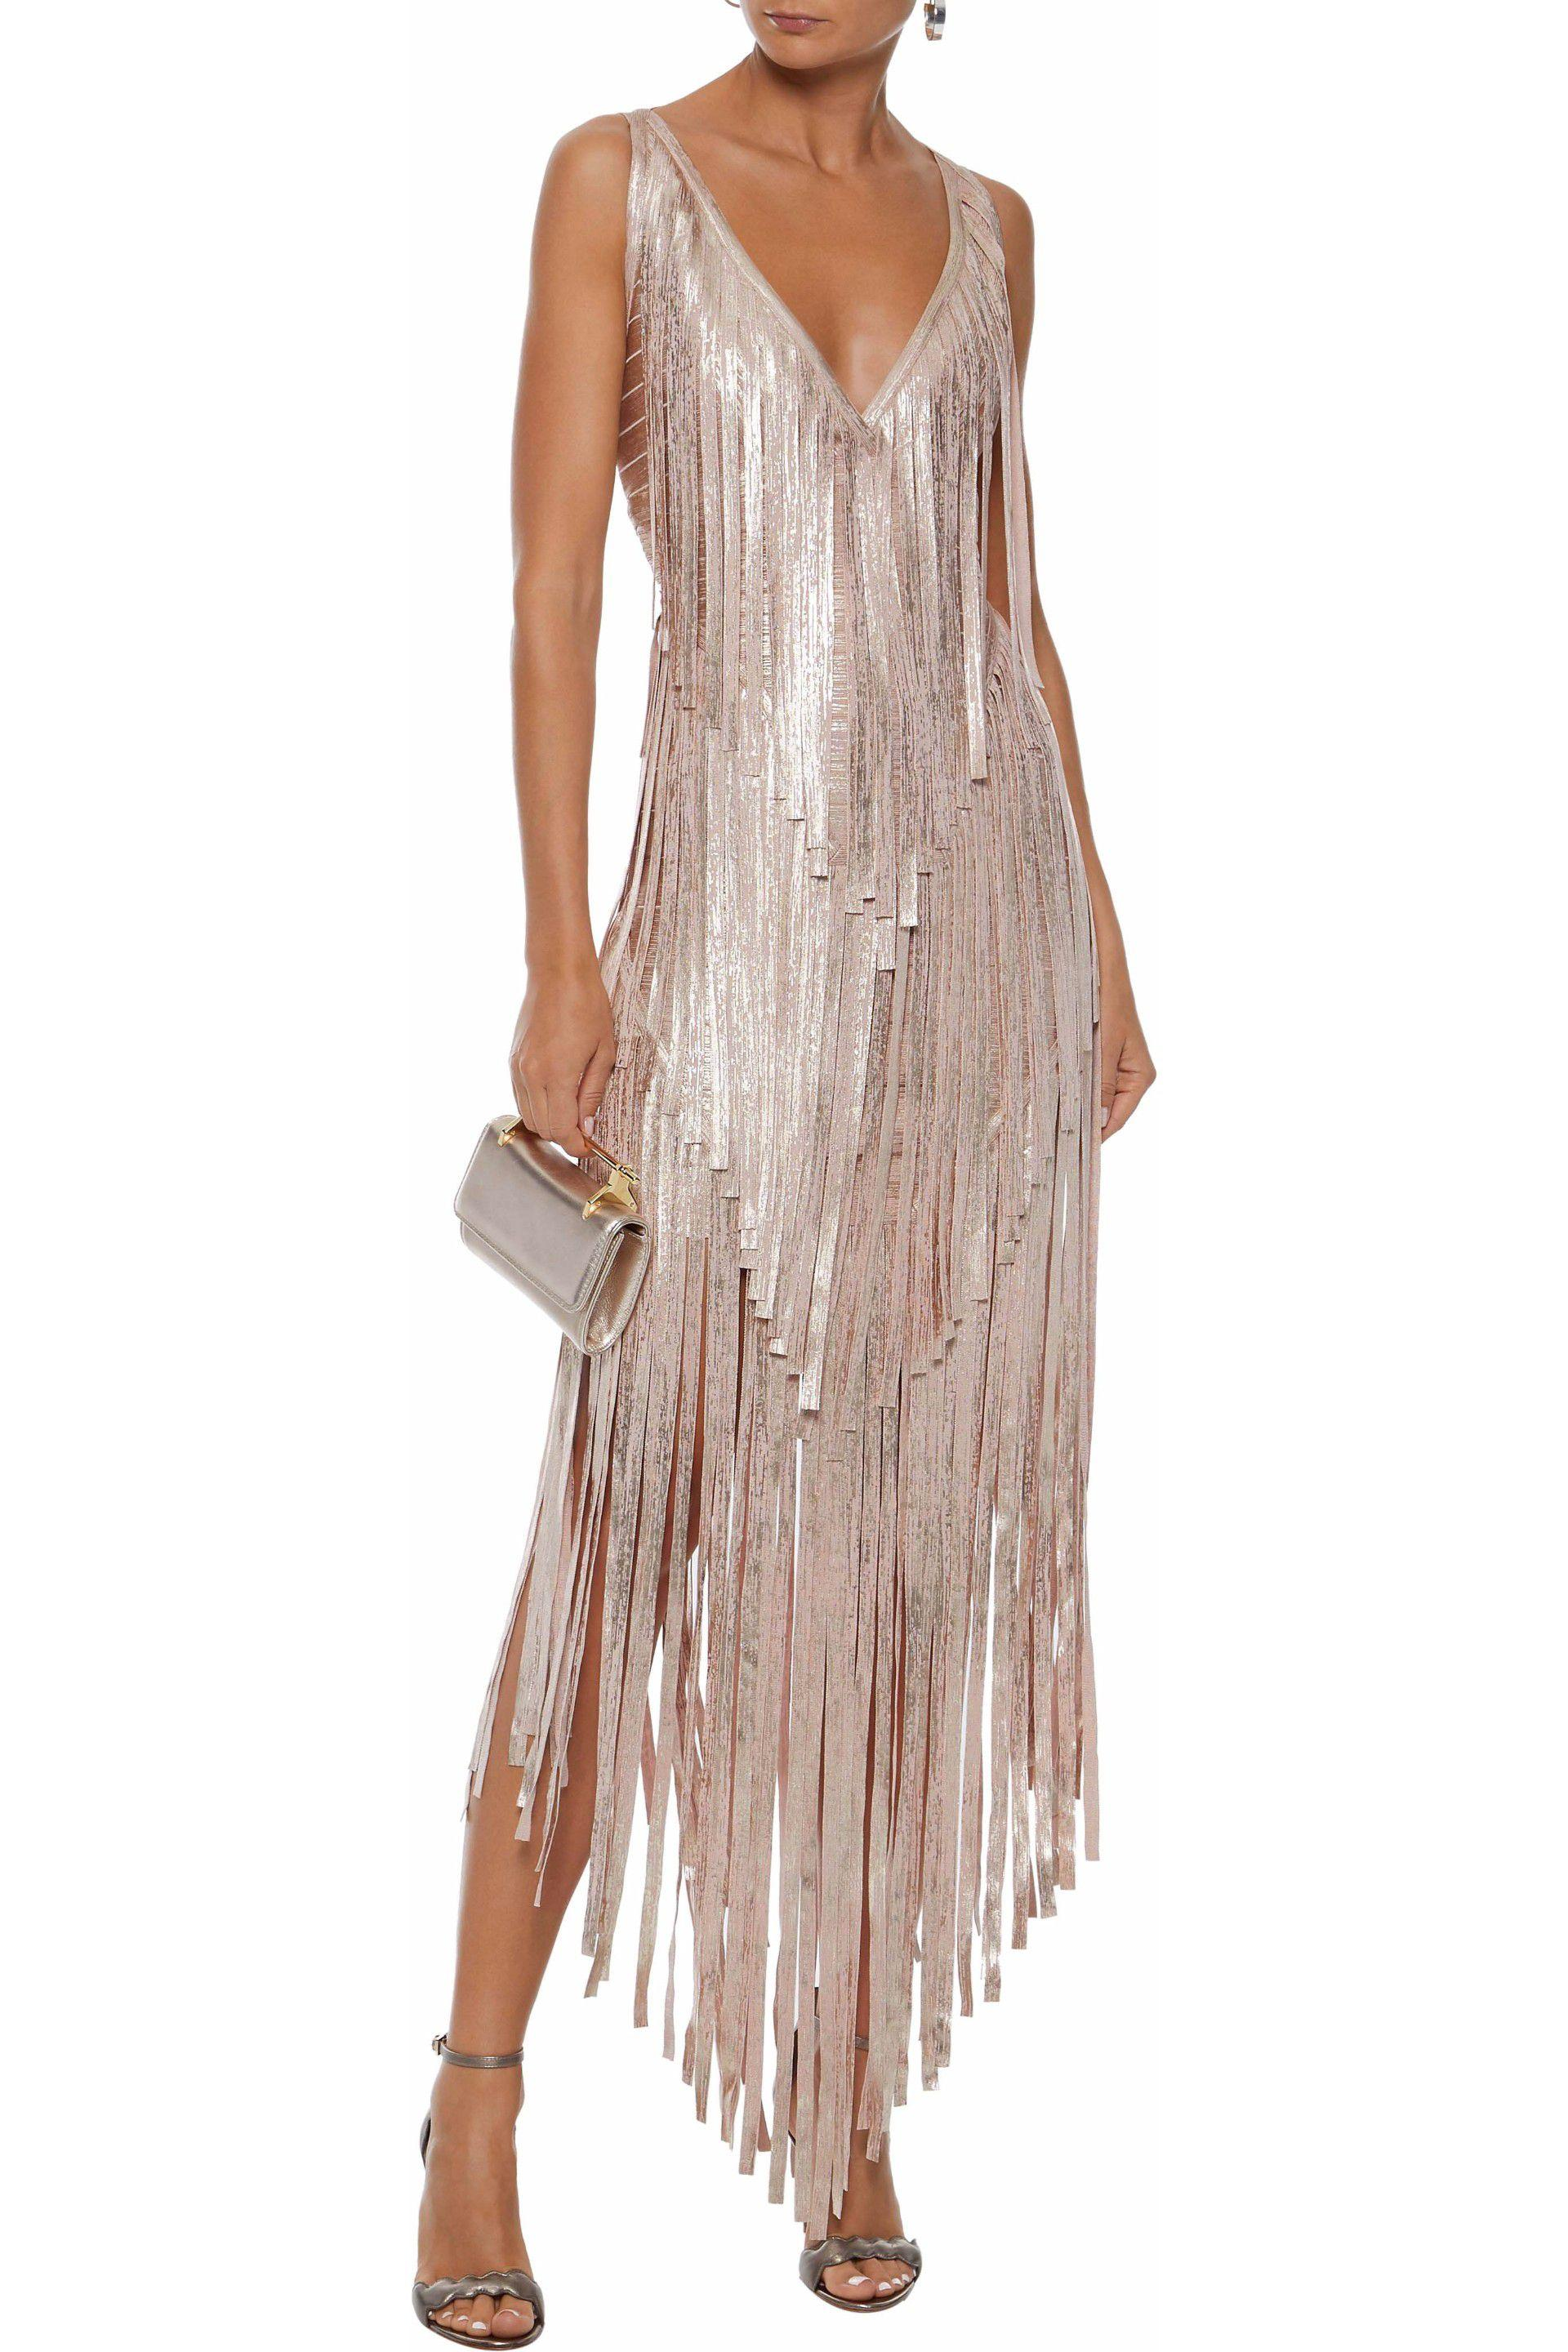 486951953d8 Hervé Léger Hervé Léger Woman Izabel Fringed Metallic Coated Bandage ...